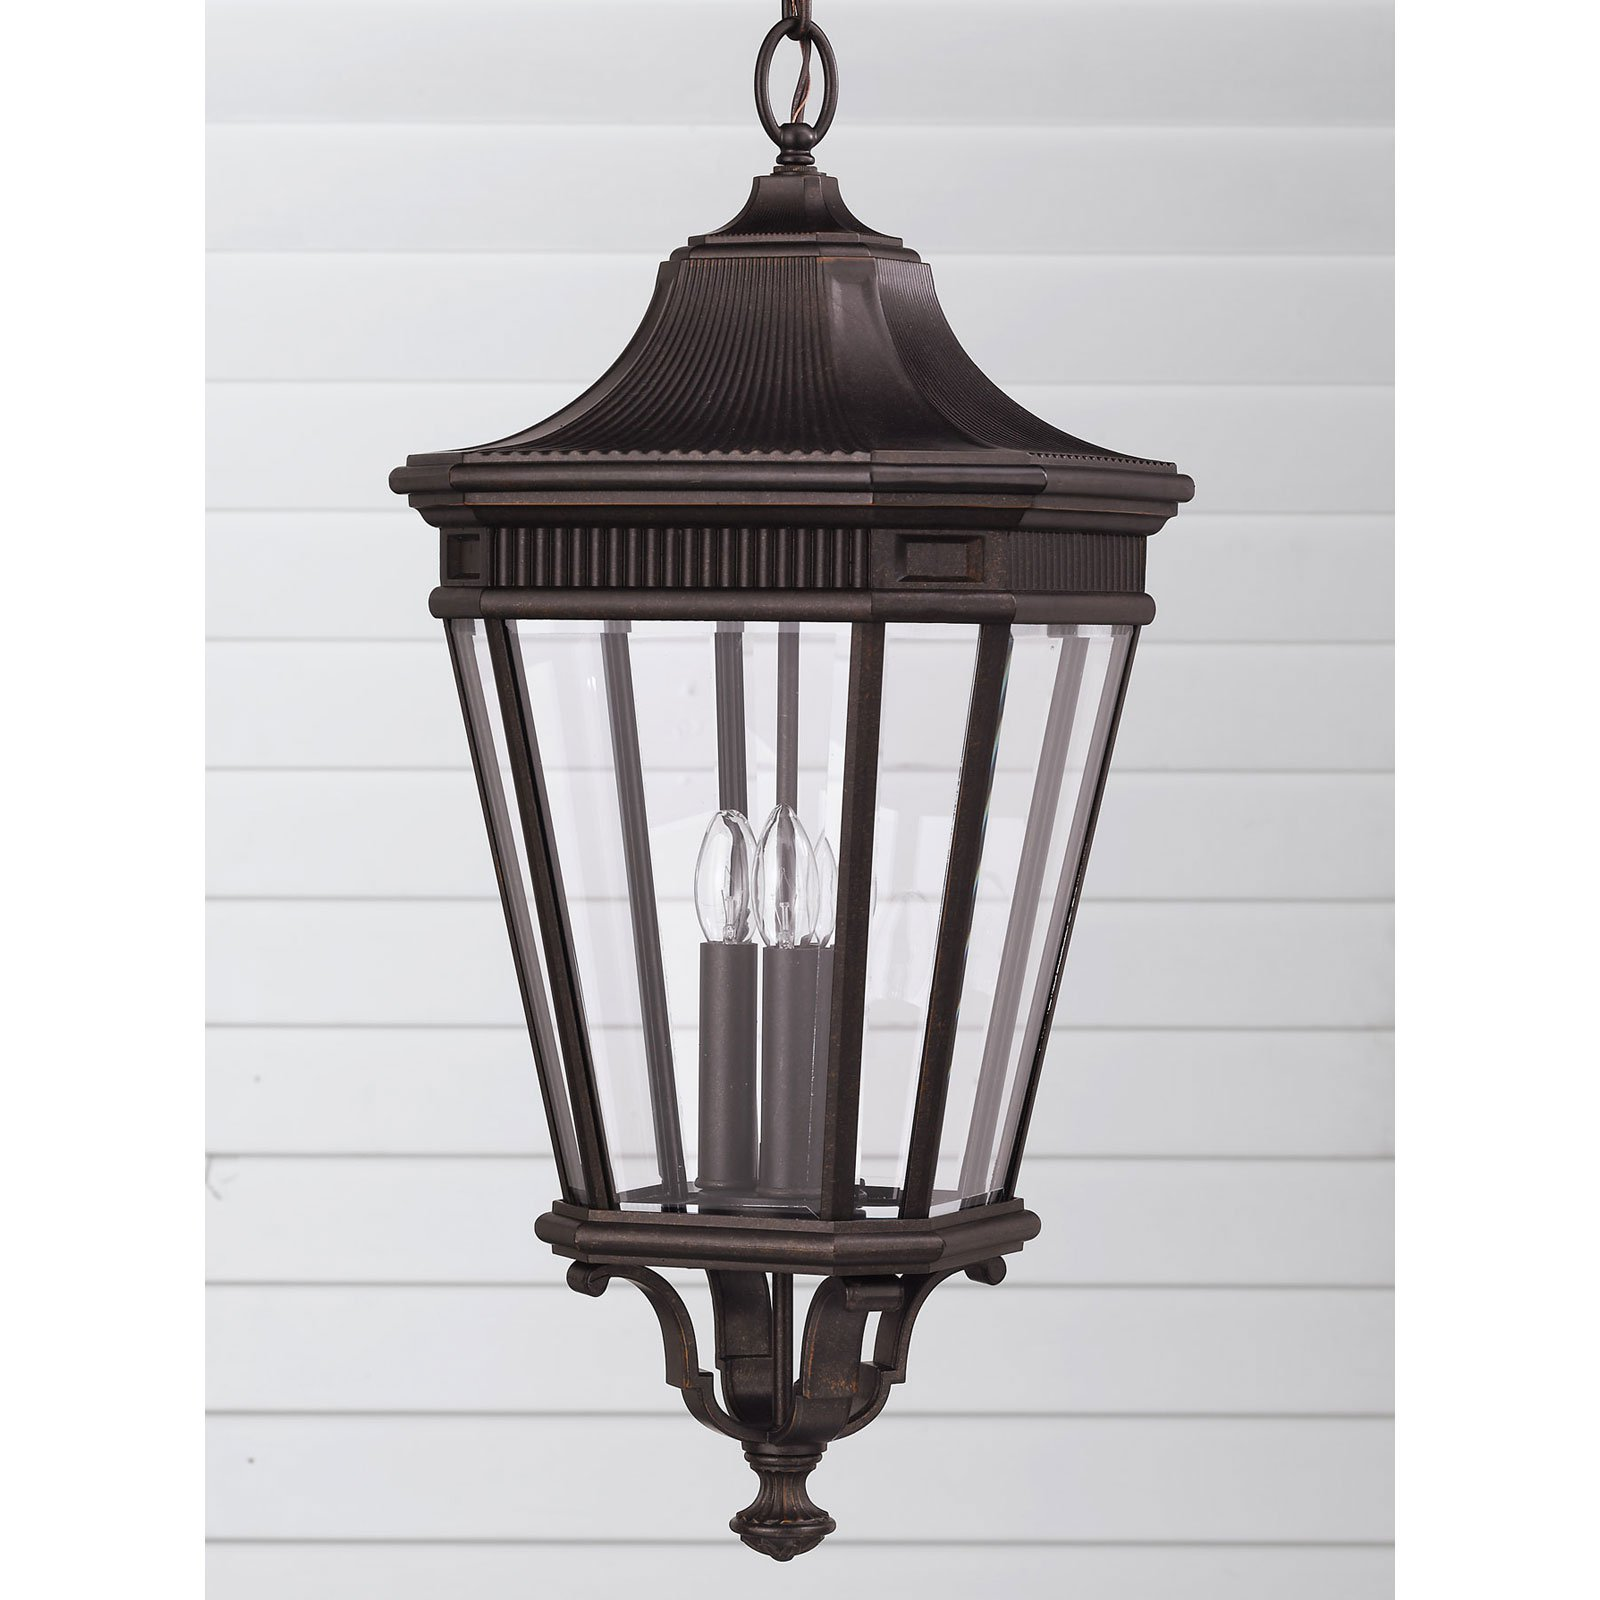 Feiss Cotswold Lane Outdoor Hanging Lantern 26.5H in. Grecian Bronze by Murray Feiss